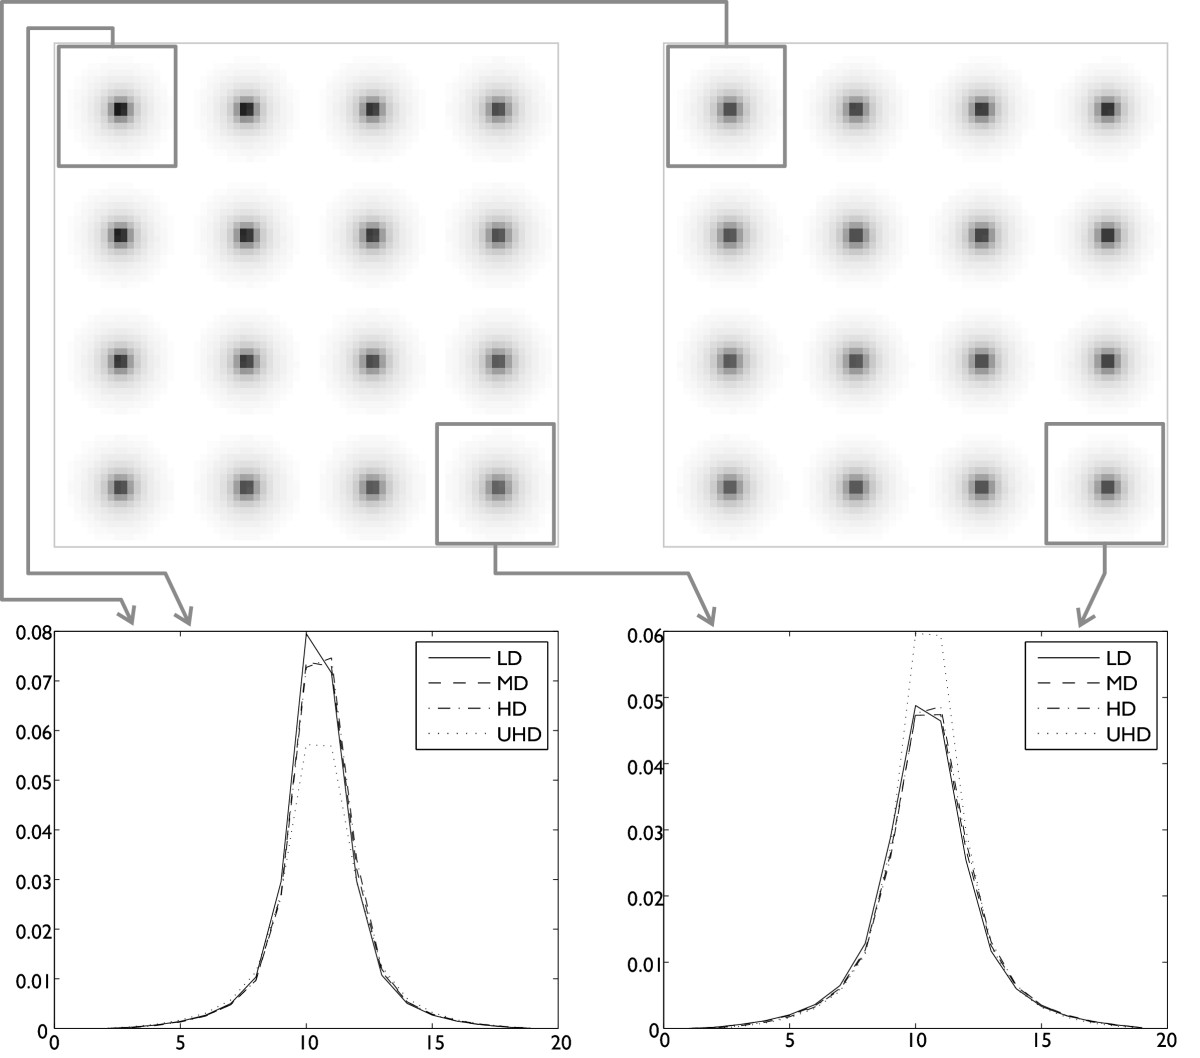 http://static-content.springer.com/image/art%3A10.1186%2F1687-6180-2012-193/MediaObjects/13634_2012_Article_299_Fig9_HTML.jpg